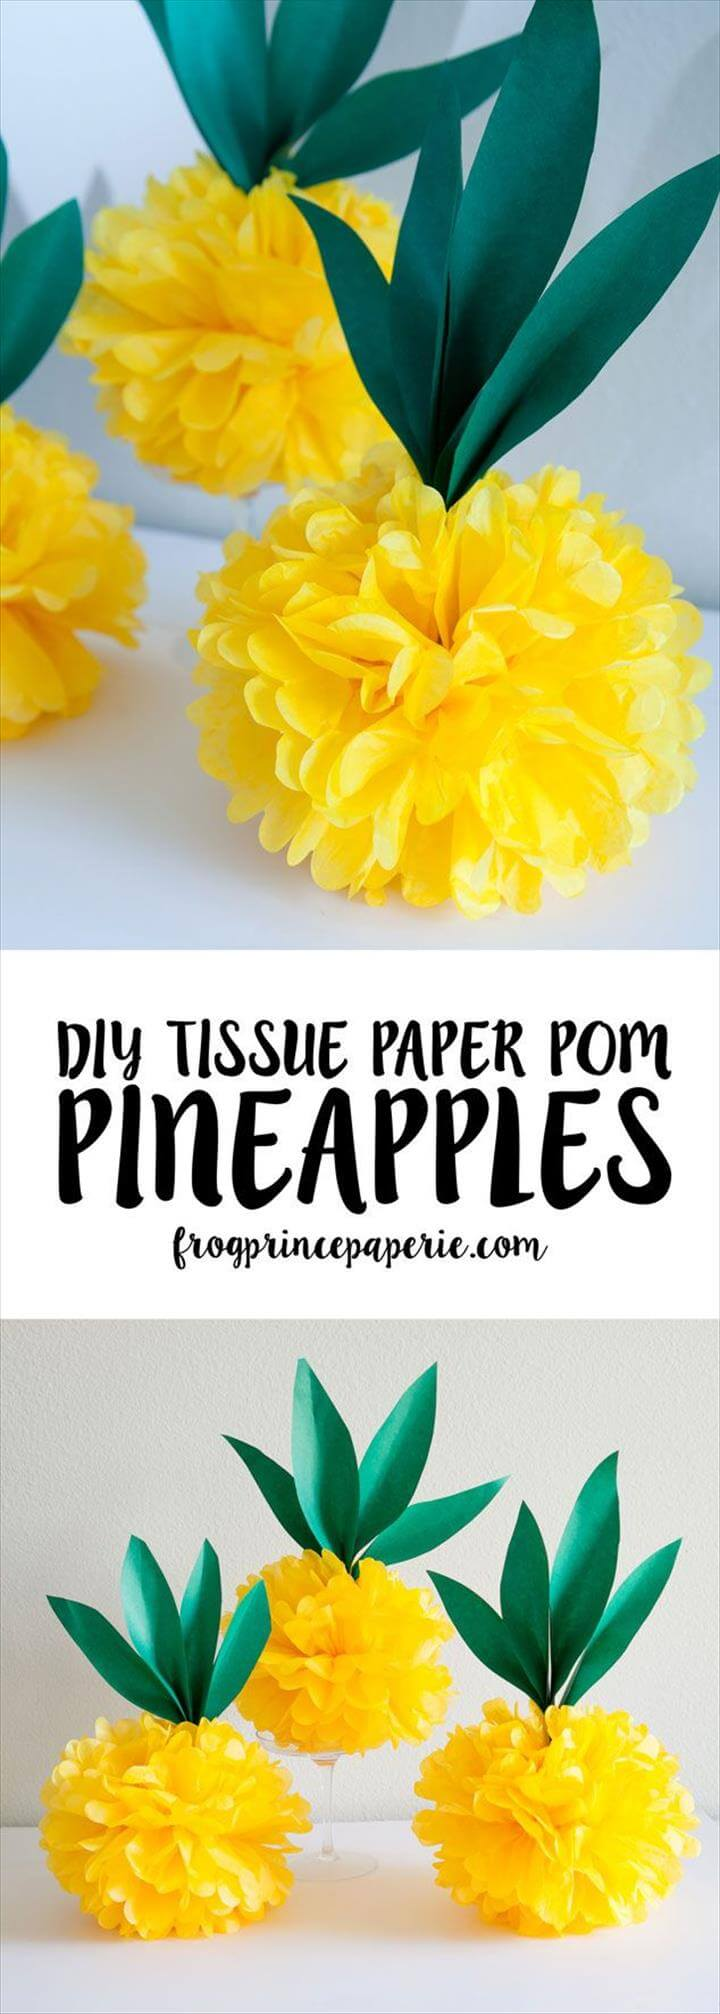 Diy Crafts Ideas. Make your own luau, pineapple party or flamingo party decorations with easy tiss.